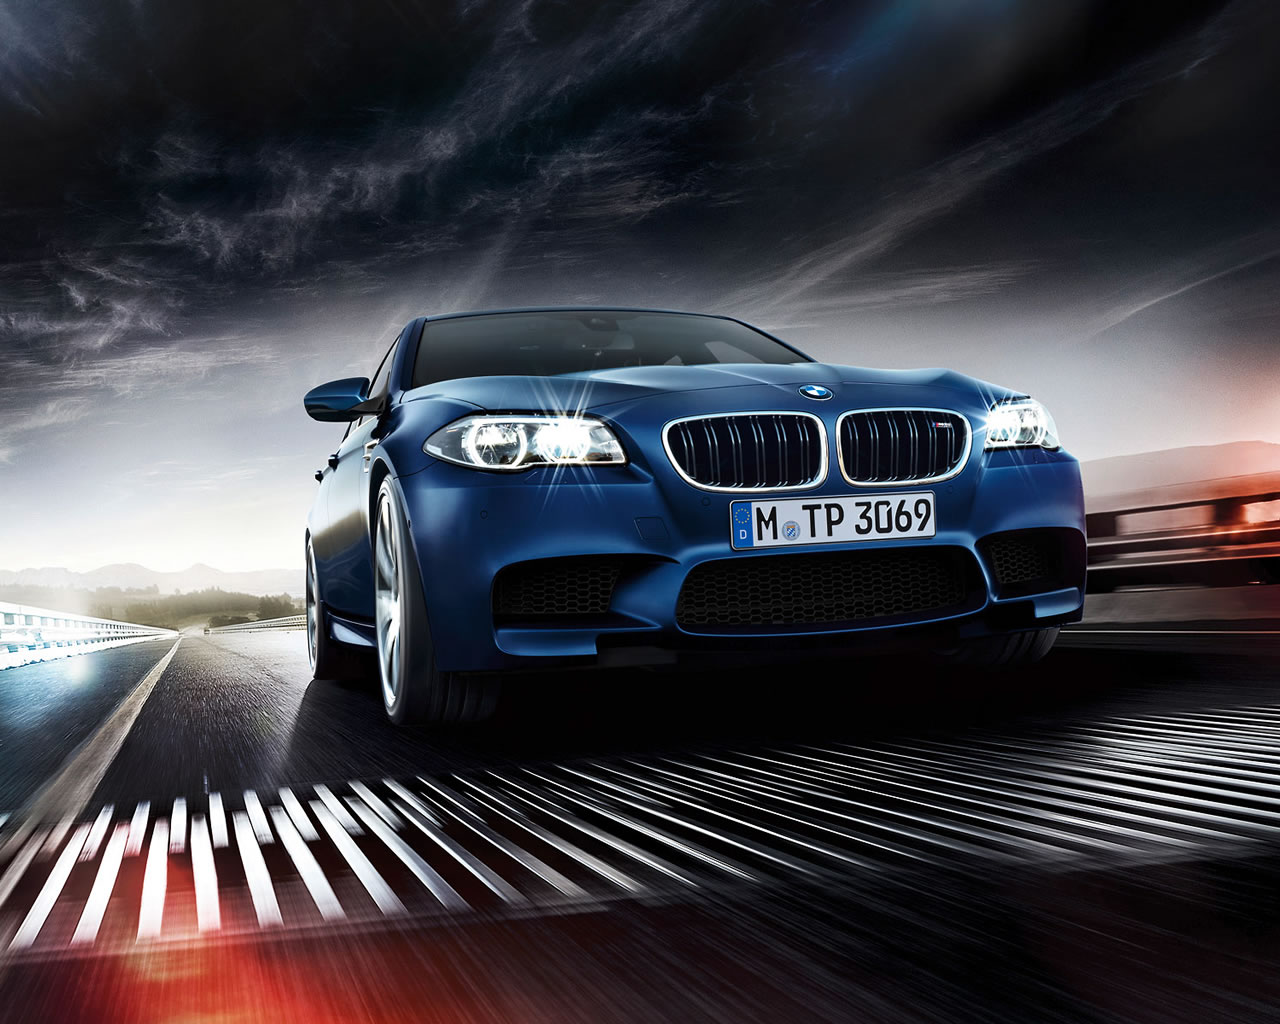 2014 BMW M5 Sedan Wallpaper - 1280 x 1024